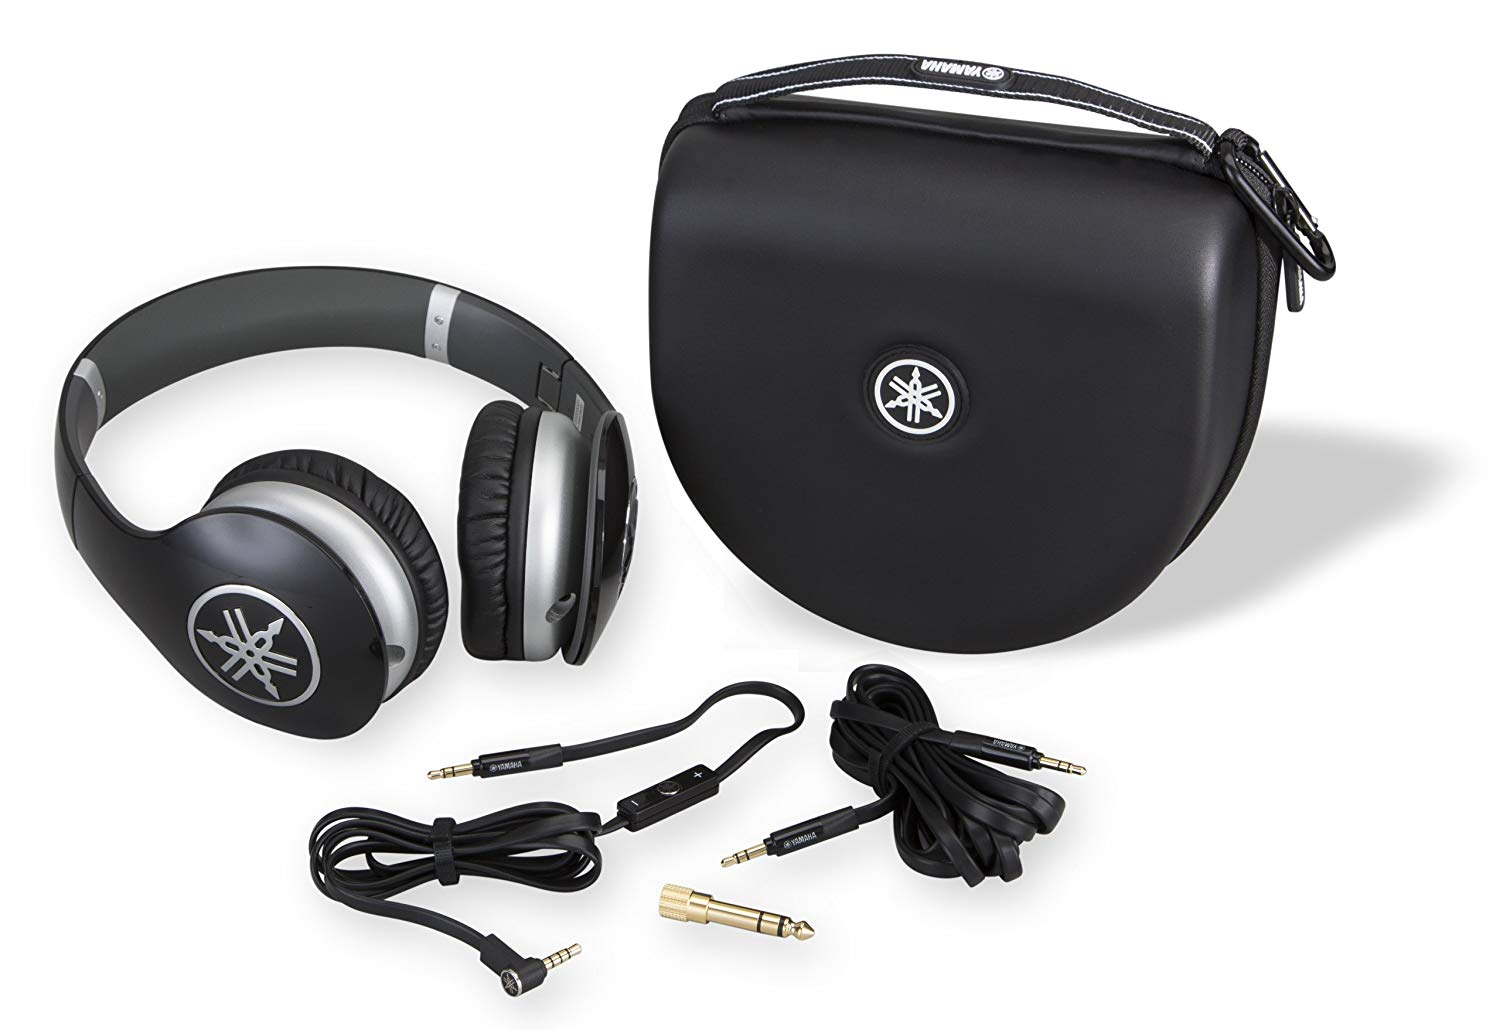 Yamaha PRO 500 Over-Ear Headphones